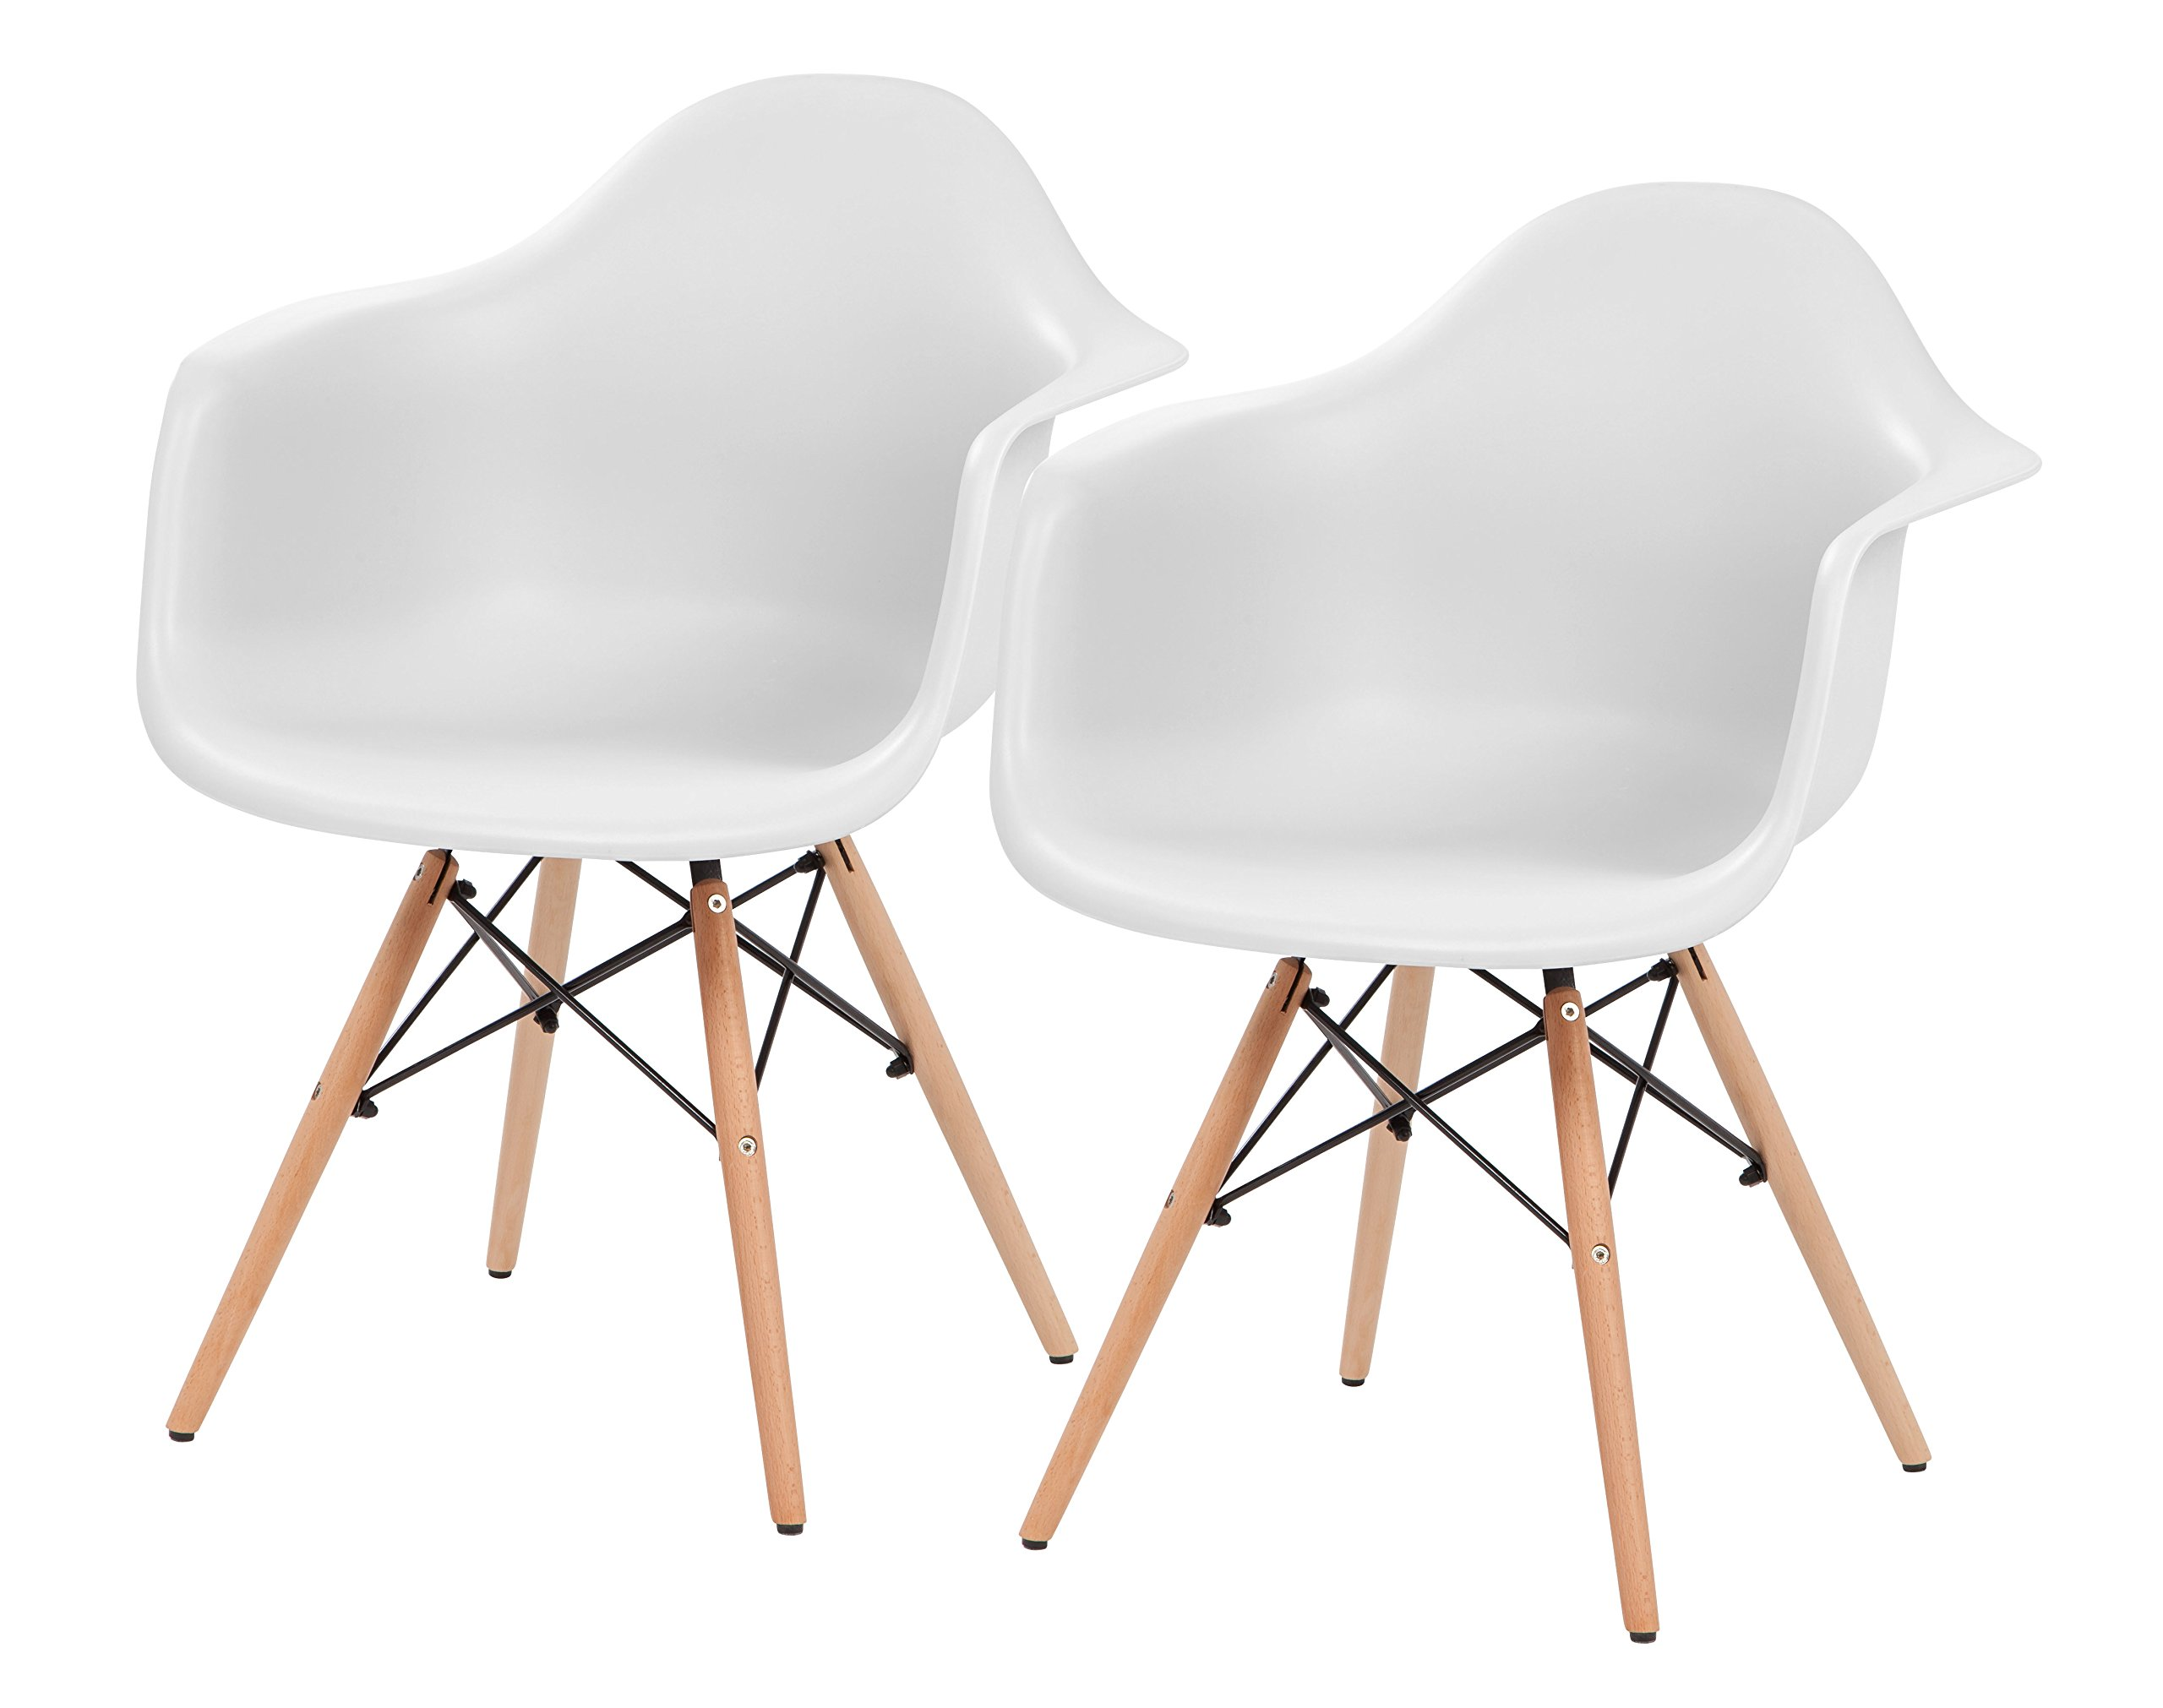 IRIS Mid-Century Modern Shell Armchair with Wood Eiffel Legs, 2 Pack, Cotton White